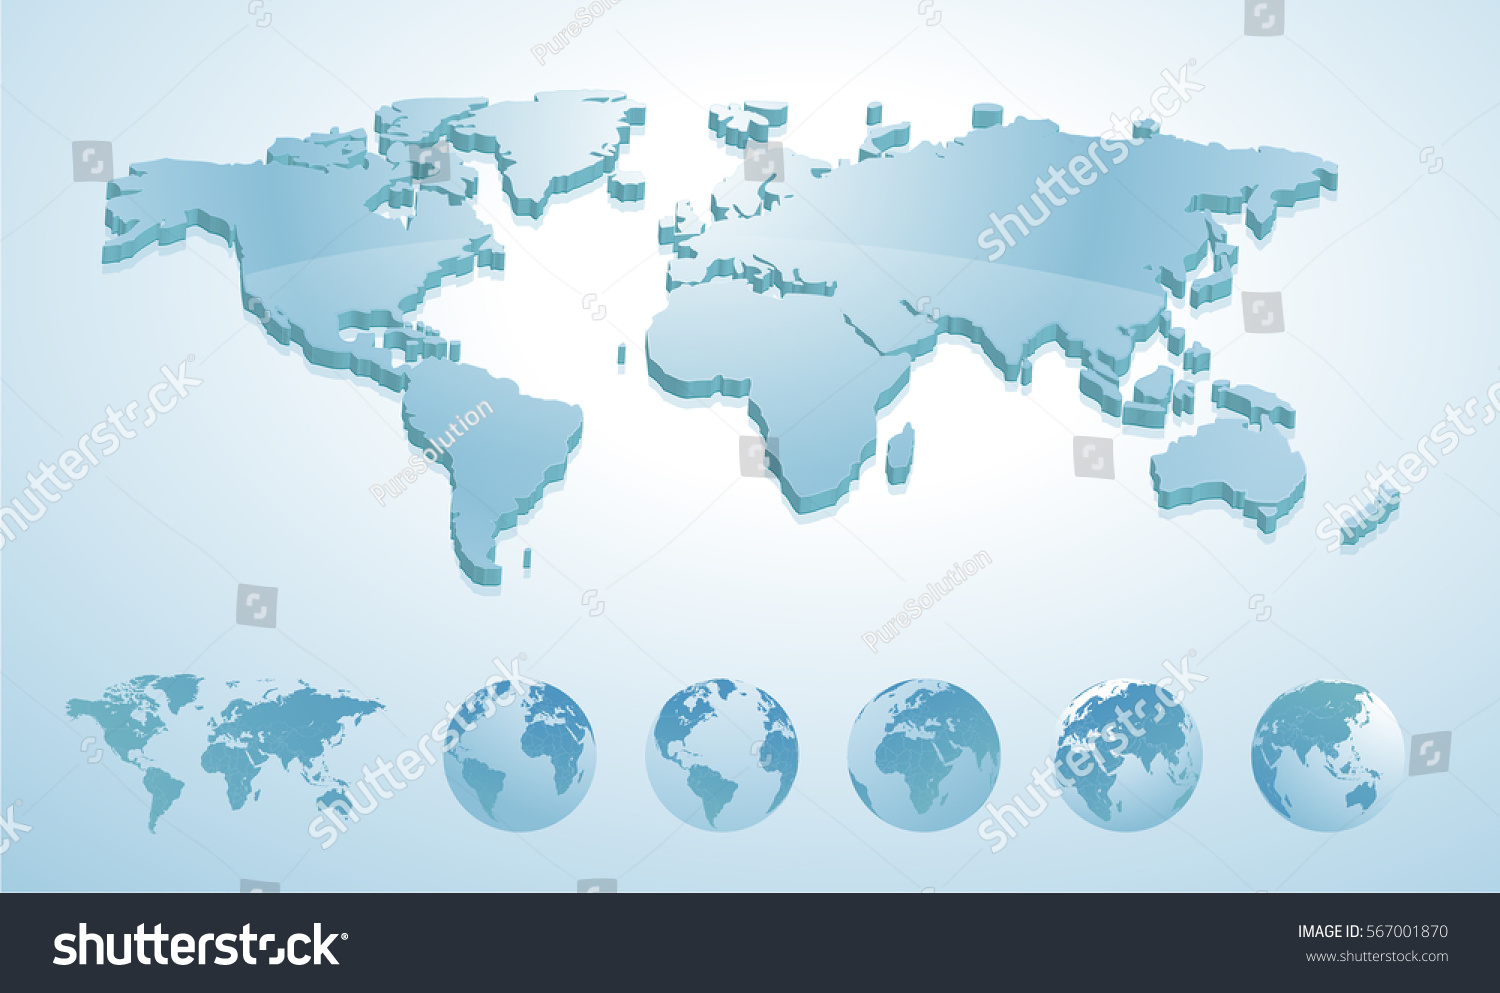 3 d world map illustration earth globes stock vector 567001870 3d world map illustration with earth globes showing all continents vector illustration template for website gumiabroncs Images